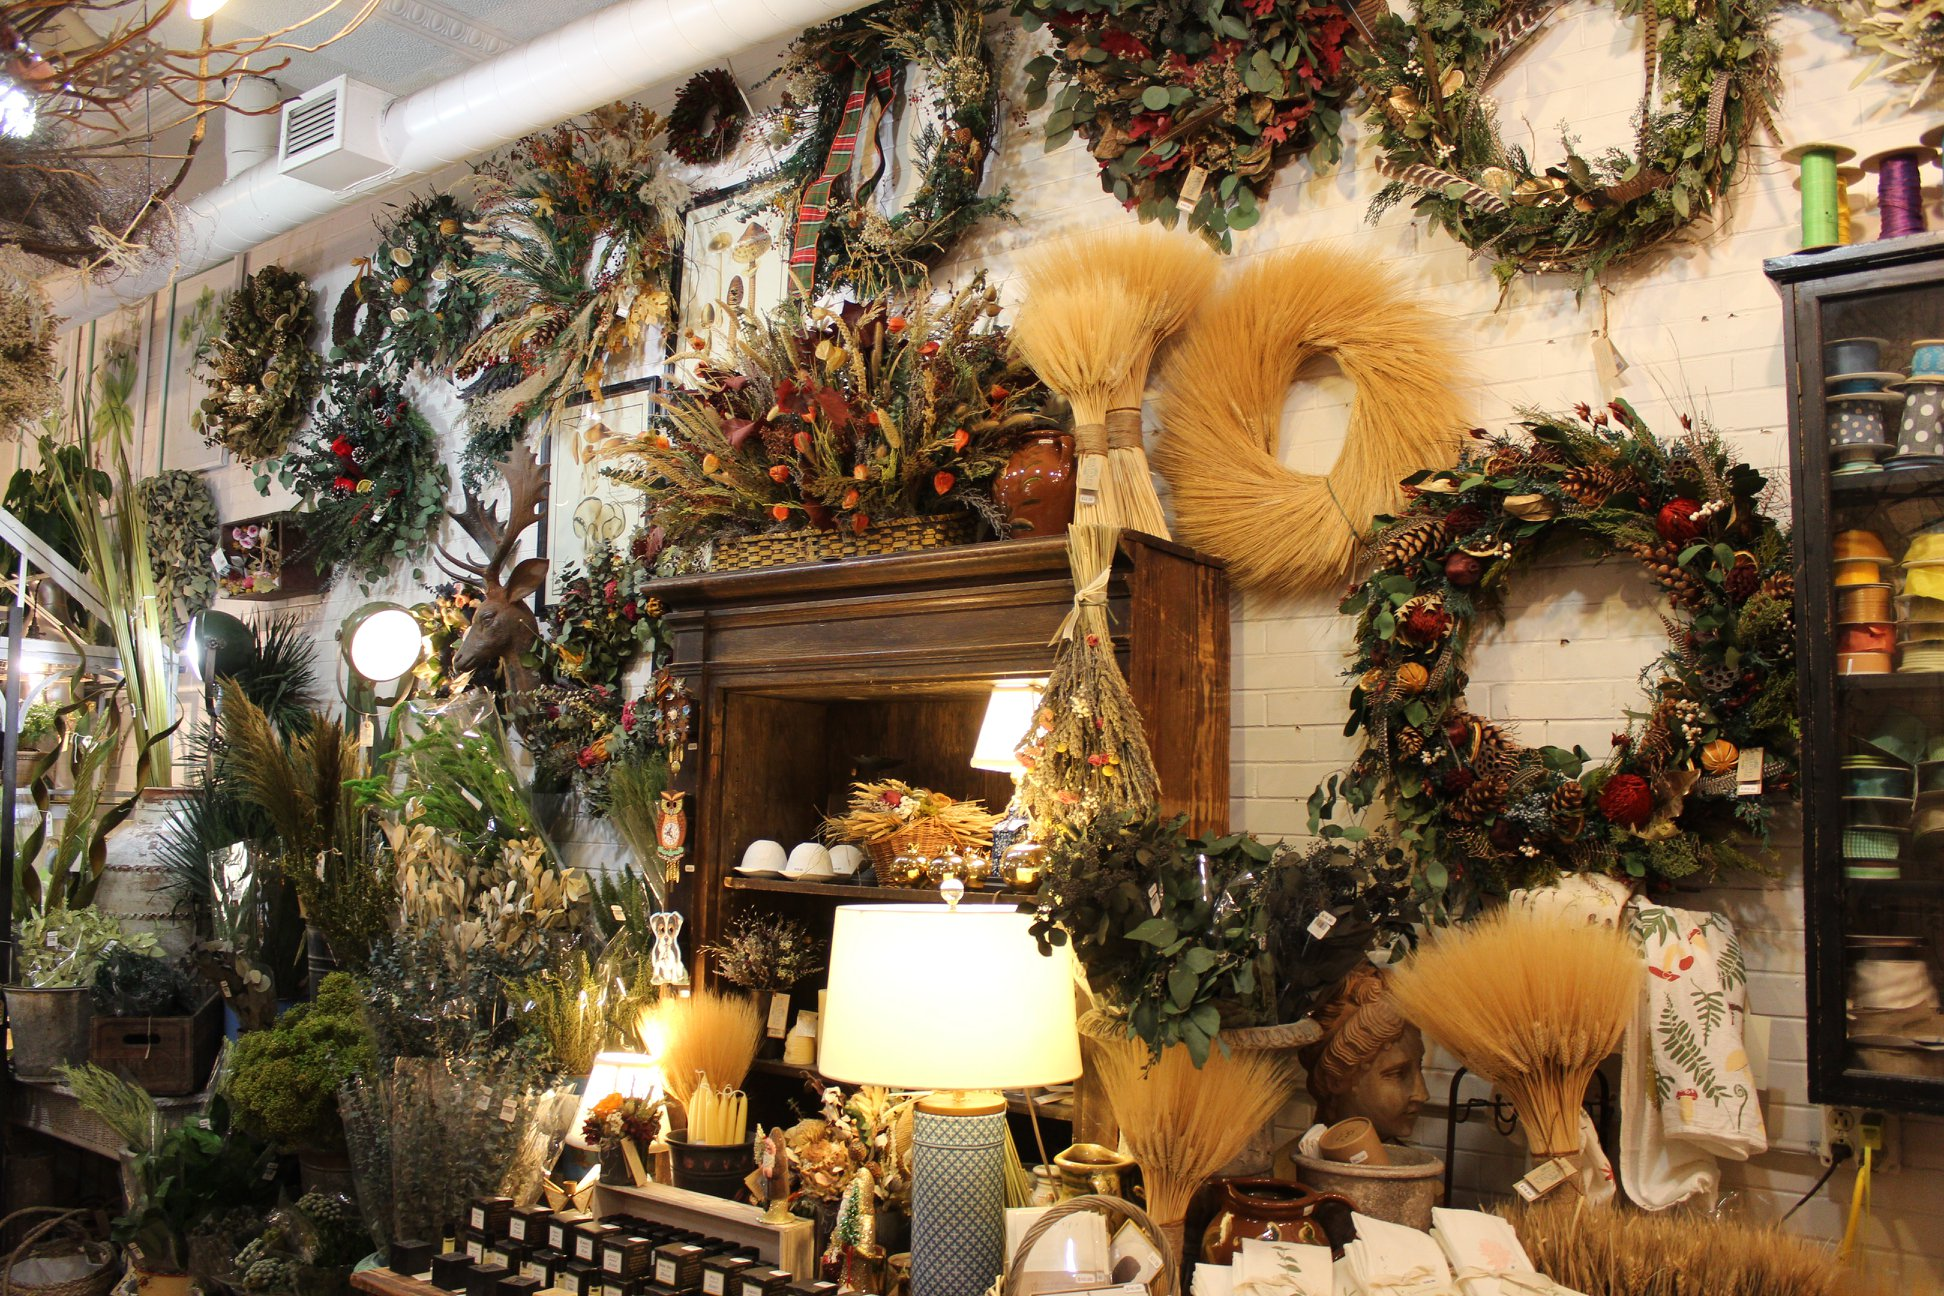 Roxanne's Dried Flowers - If you start celebrating Christmas the day after Thanksgiving, be sure to stop by Roxanne's Dried Flowers to find unique wreaths, swags, and other arrangements to deck the halls of your home!